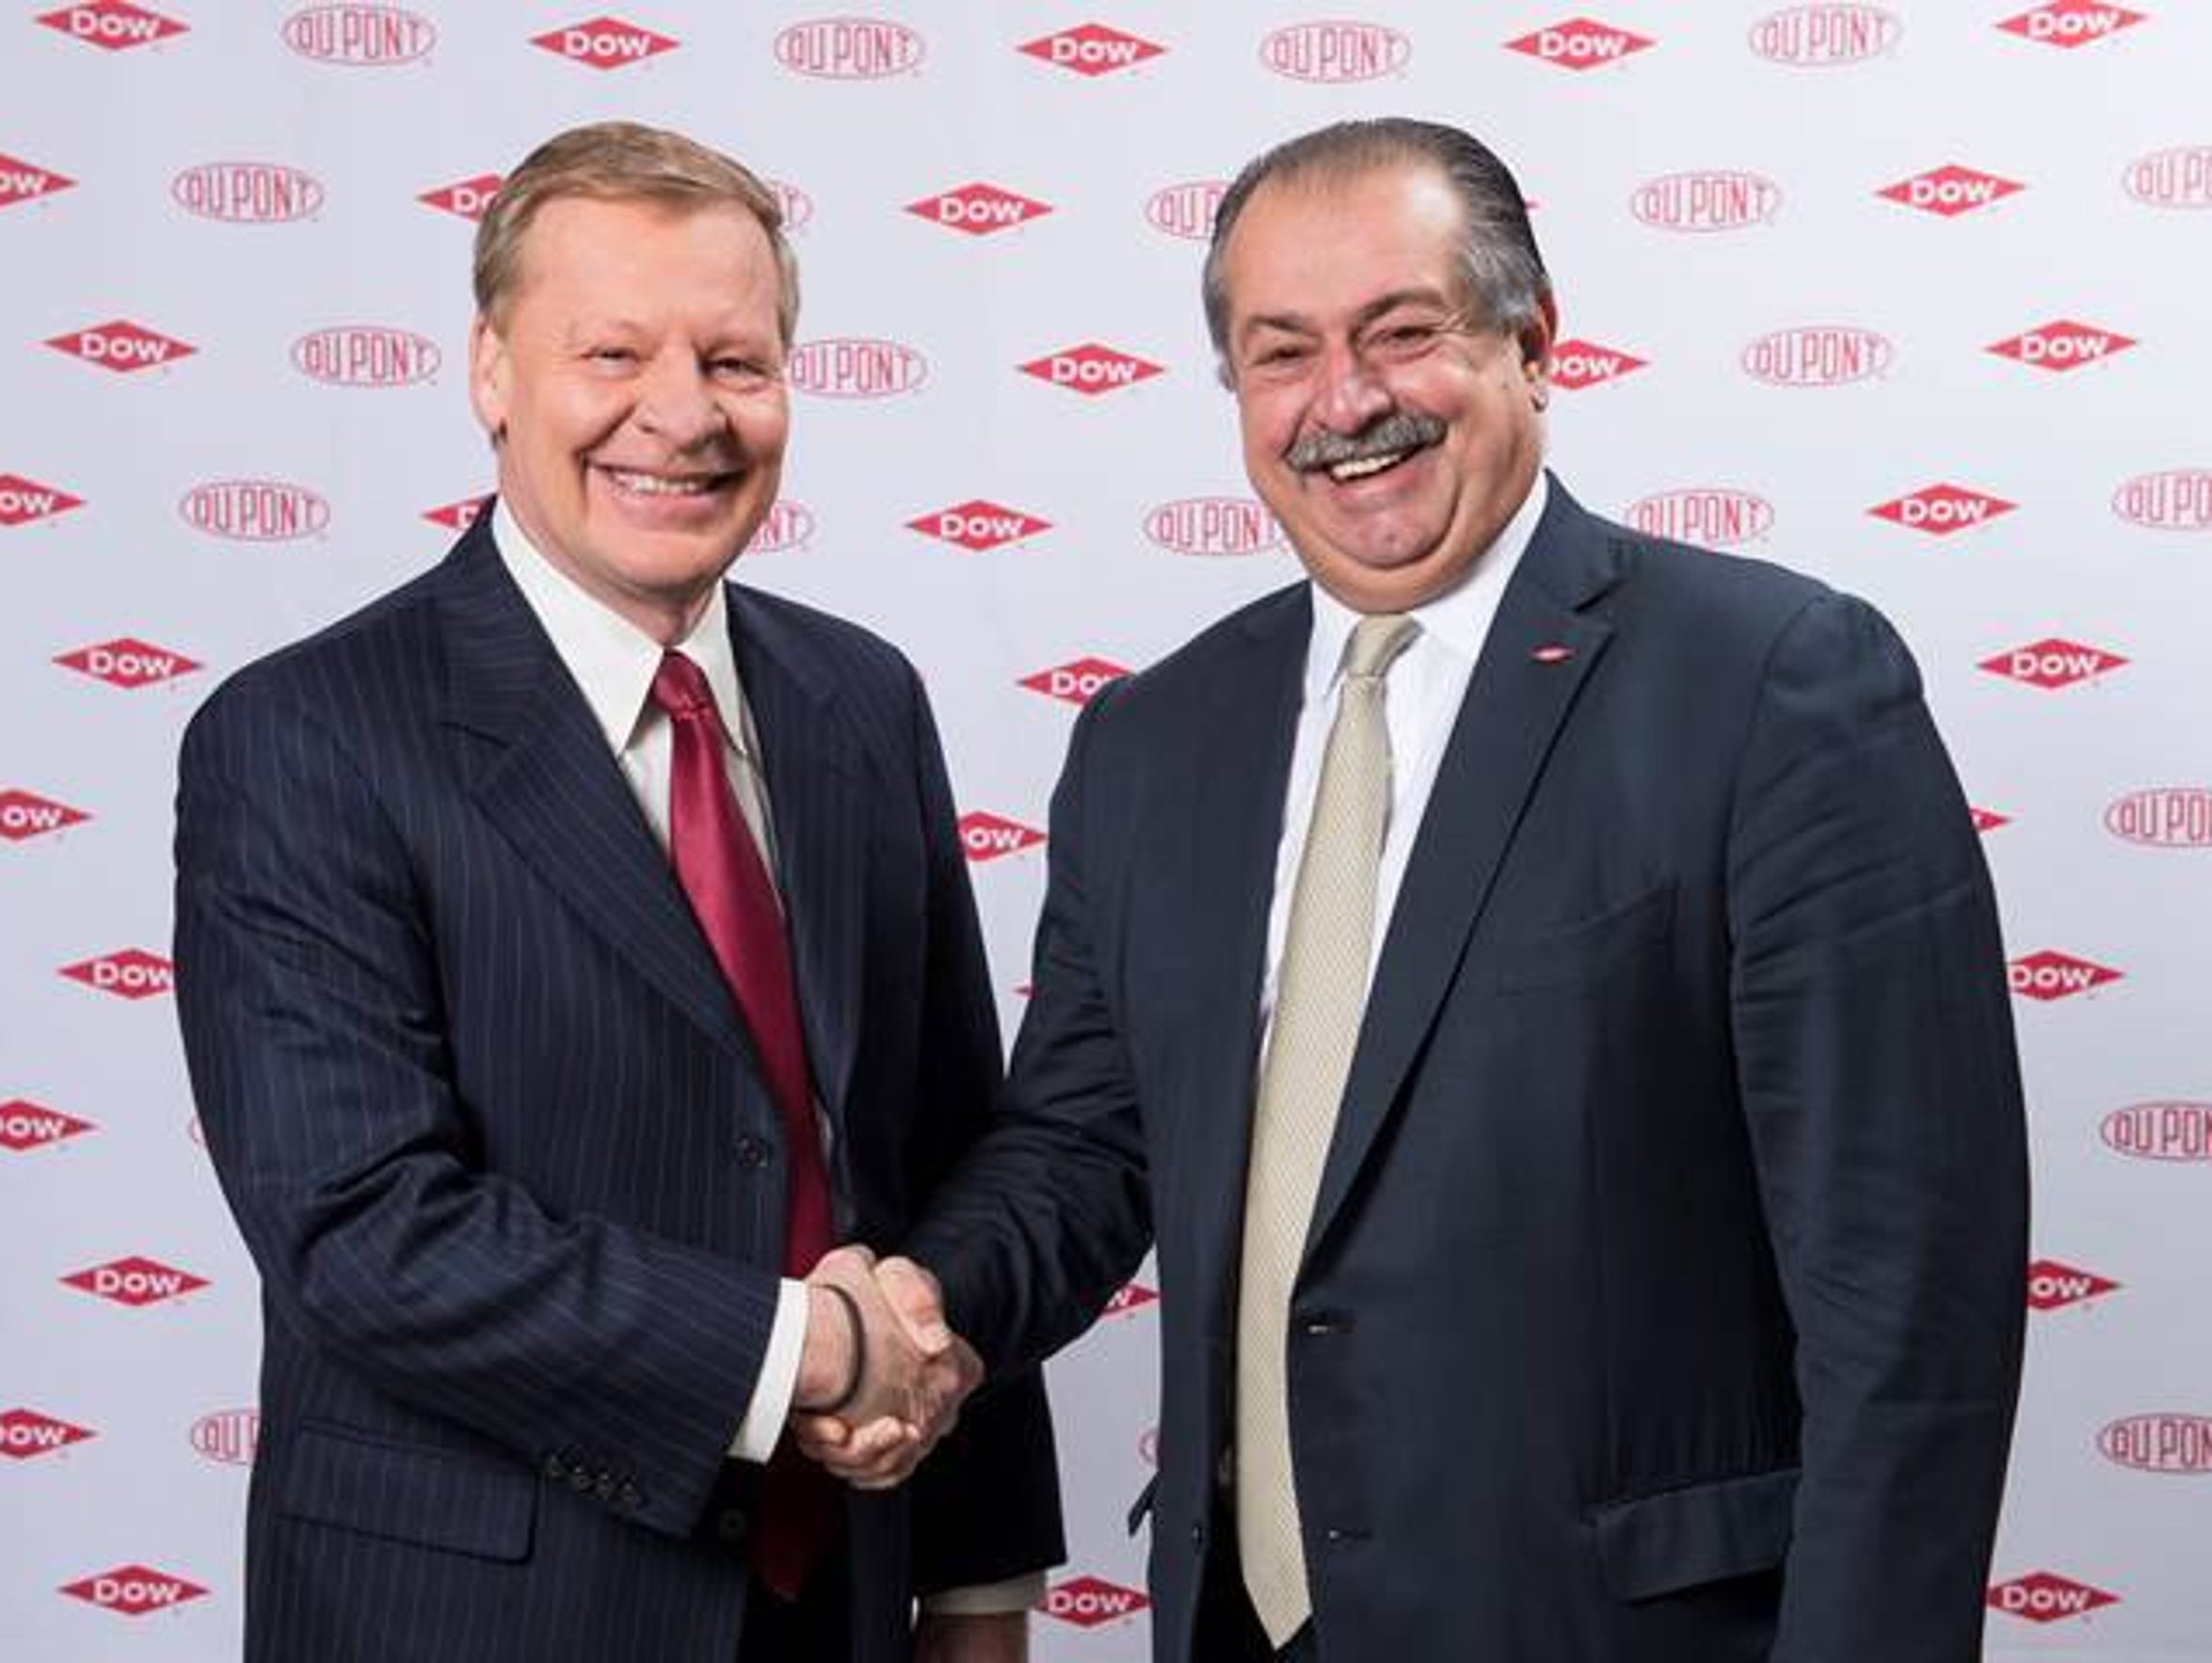 dupont or chemours who will pay the costs of c8 lawsuits dupont ceo ed breen left shakes the hand of the dow